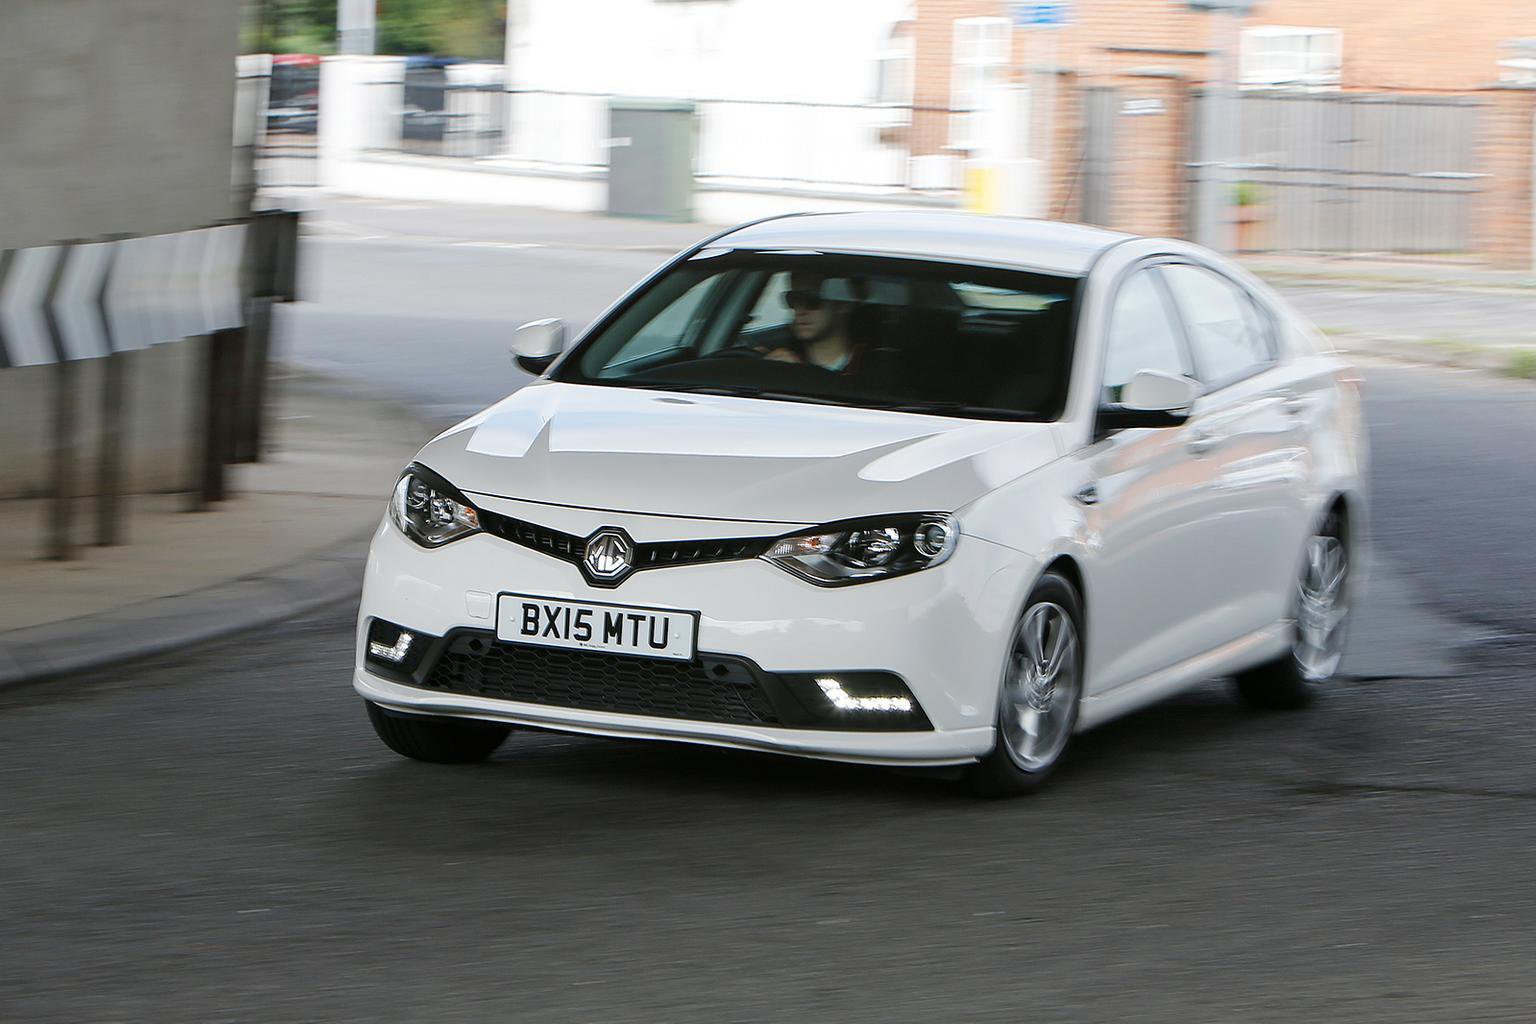 2015 MG6 1.9 DTi S review